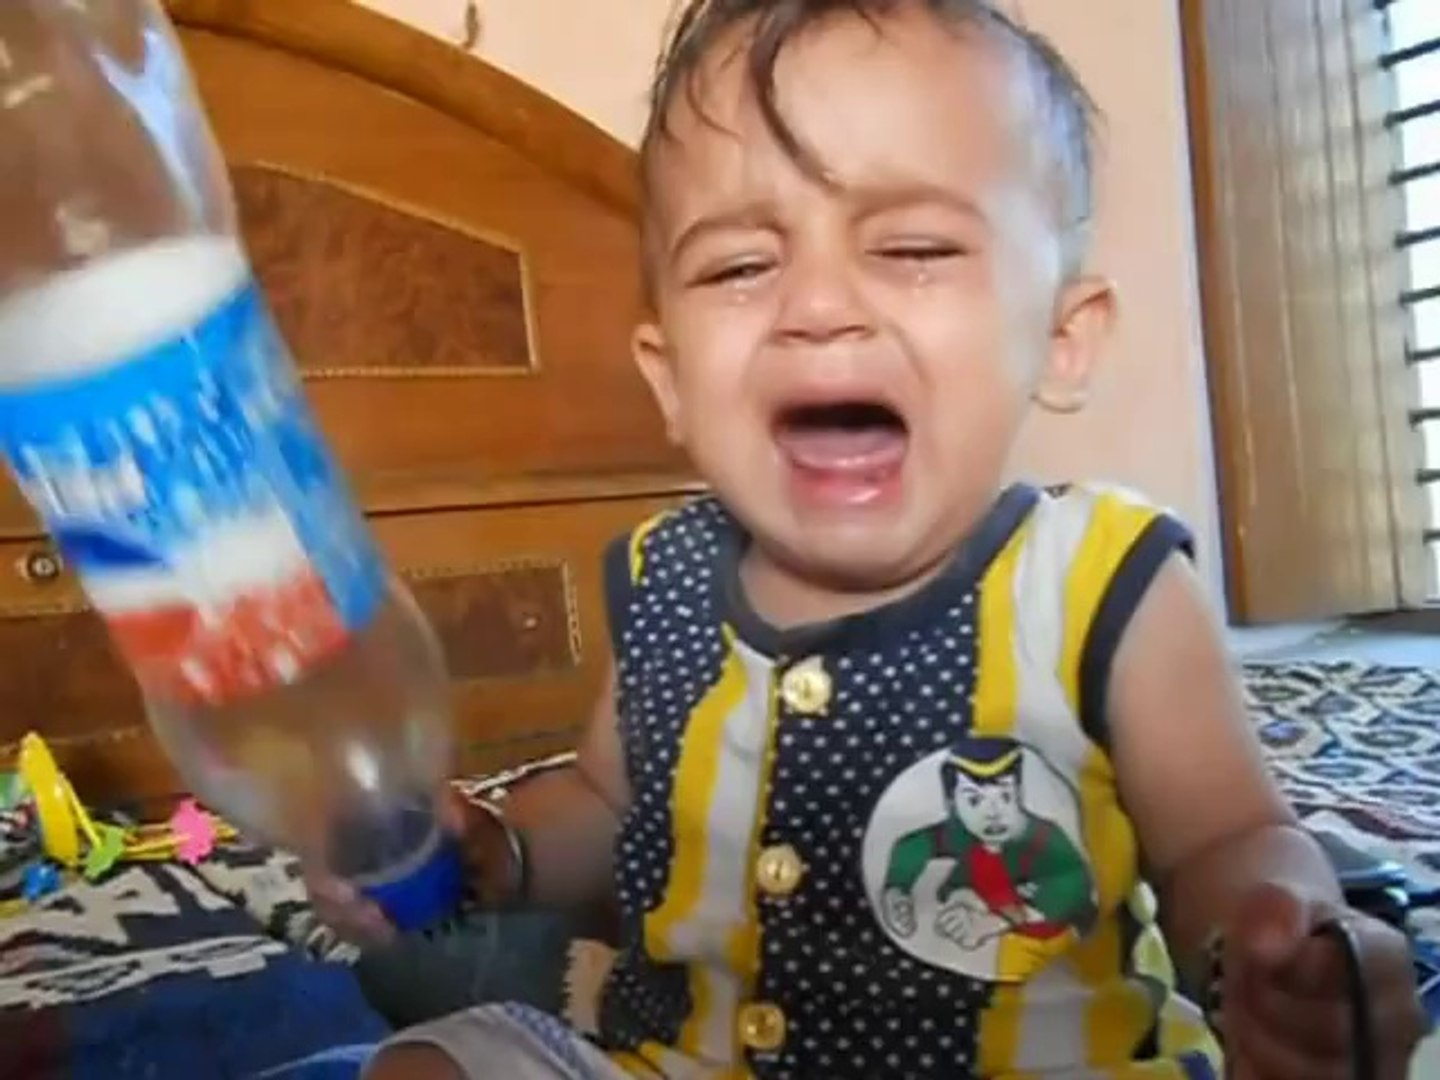 Cute Kid Crying Best Video Ever, Cute Baby Funny Acts, Cute baby playing, Best Cute baby weeping